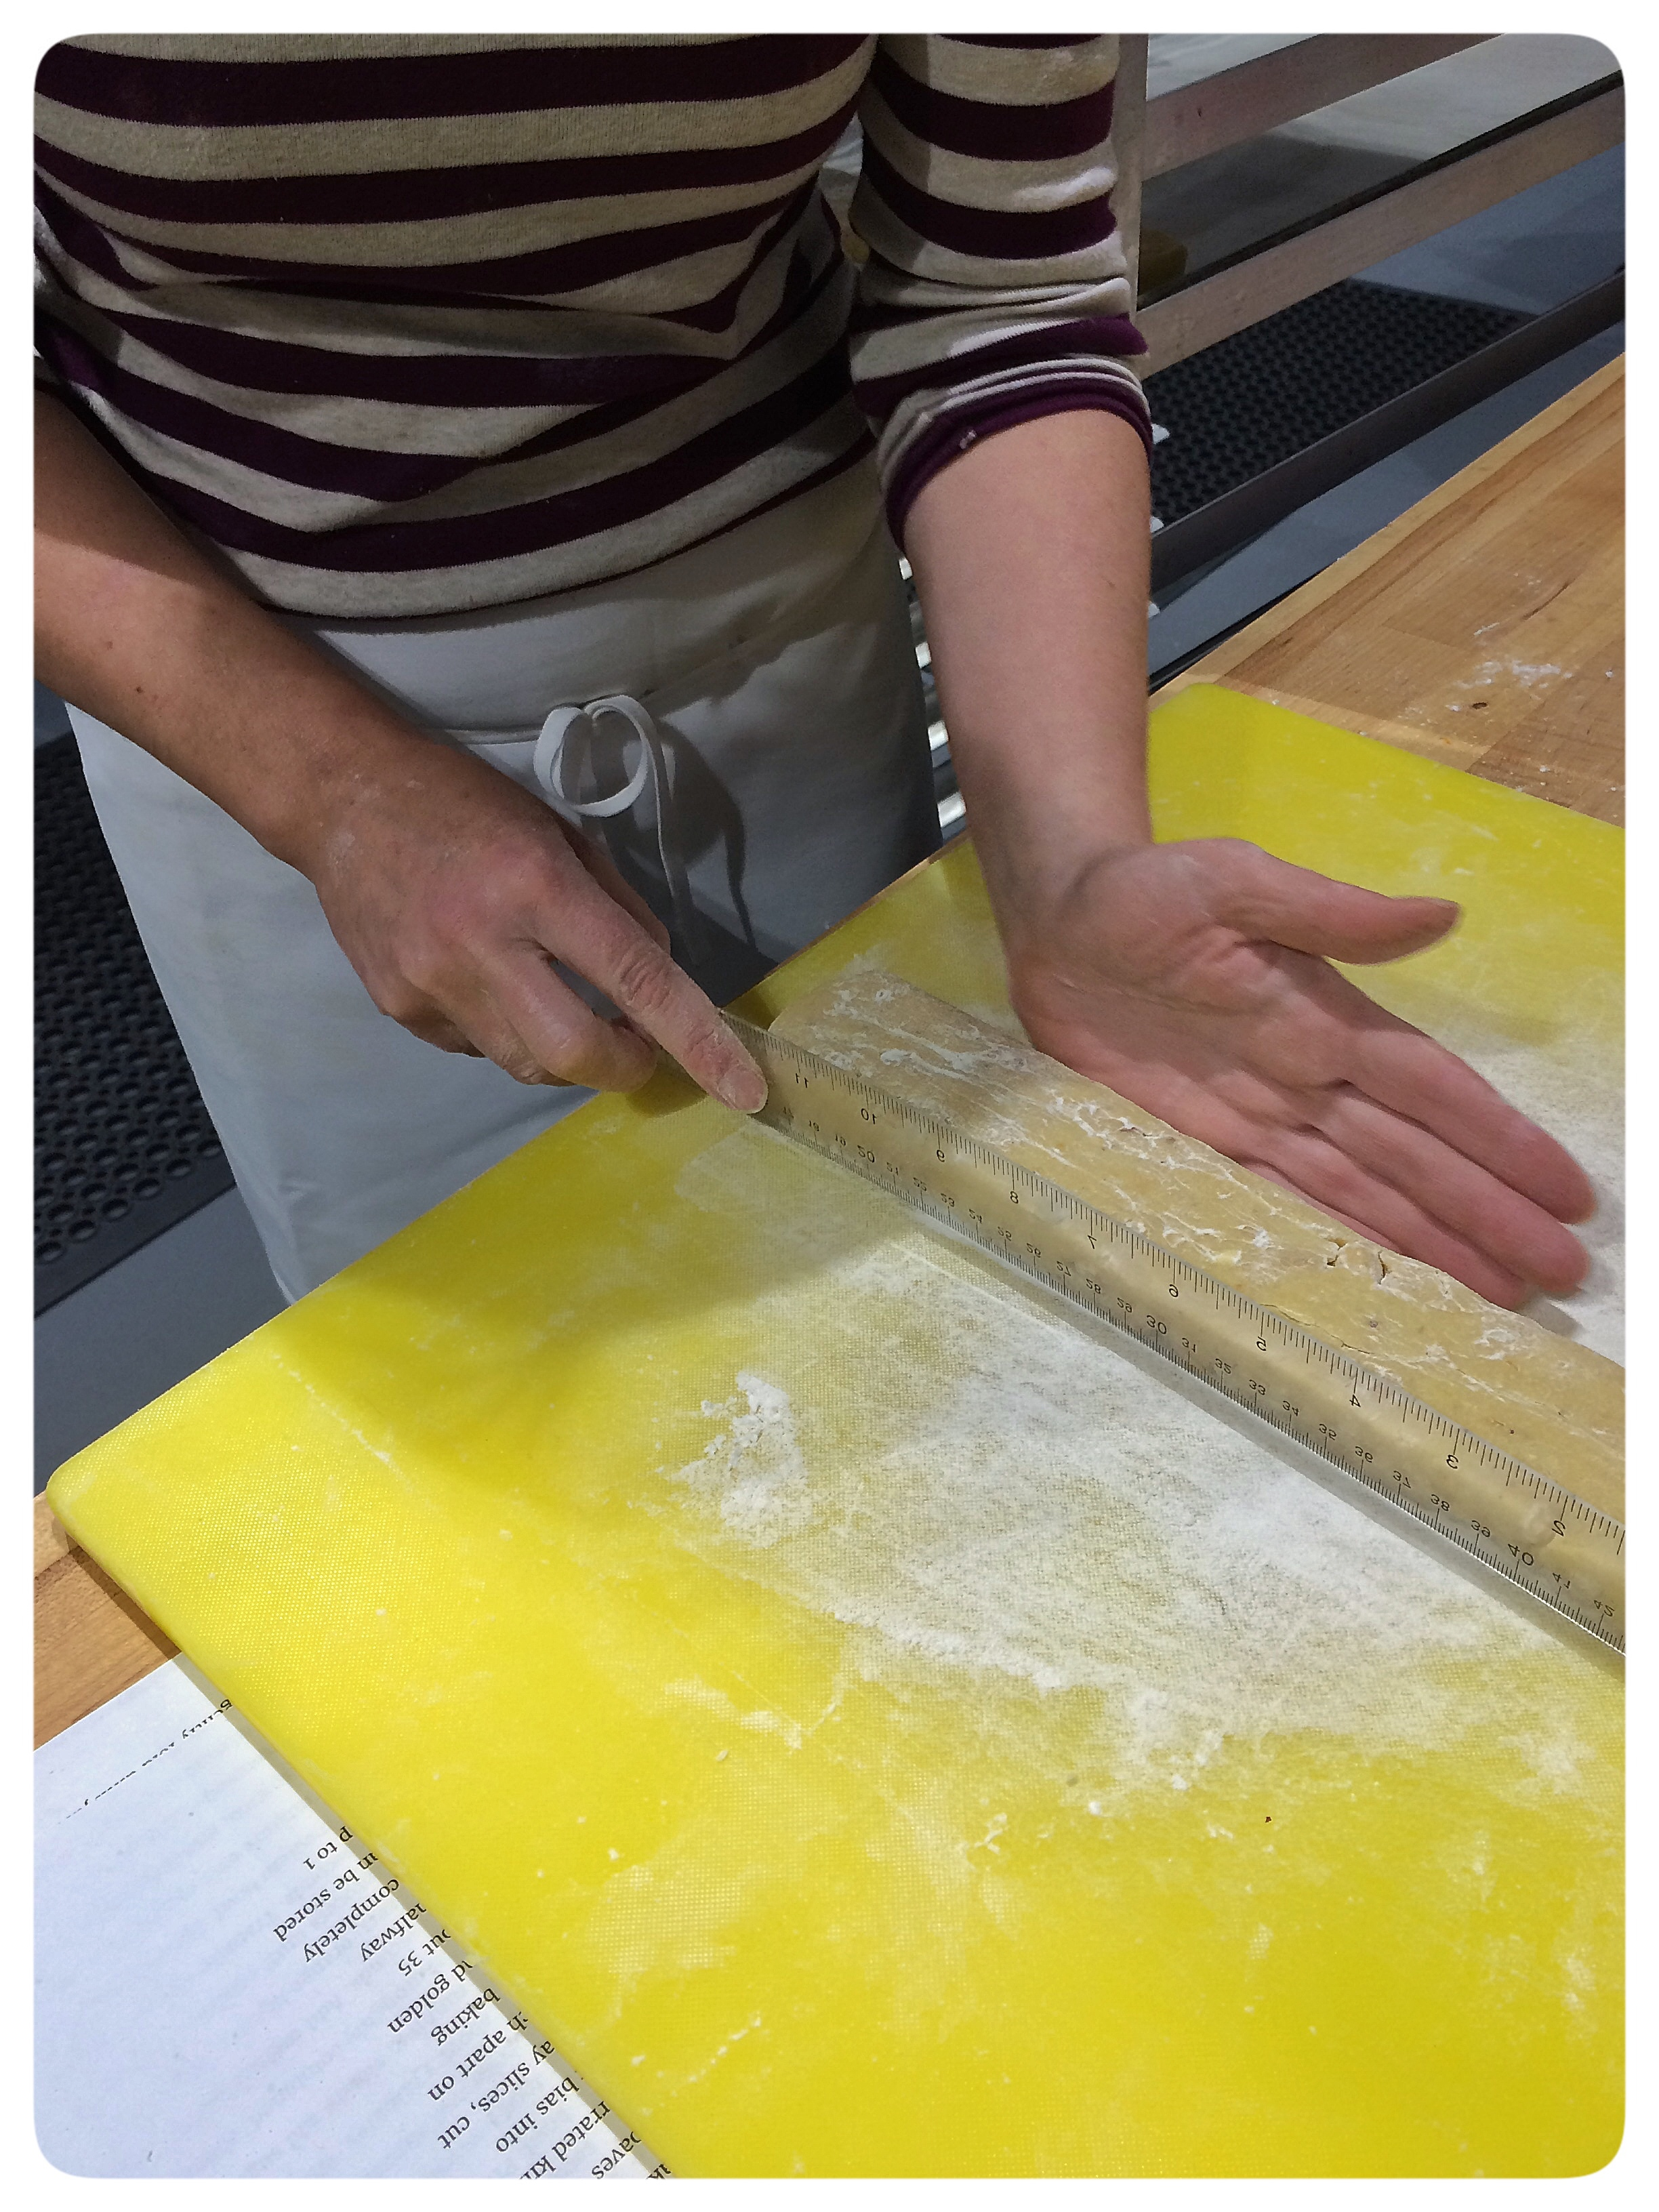 Shaping the Dough into Loaves for the First Bake